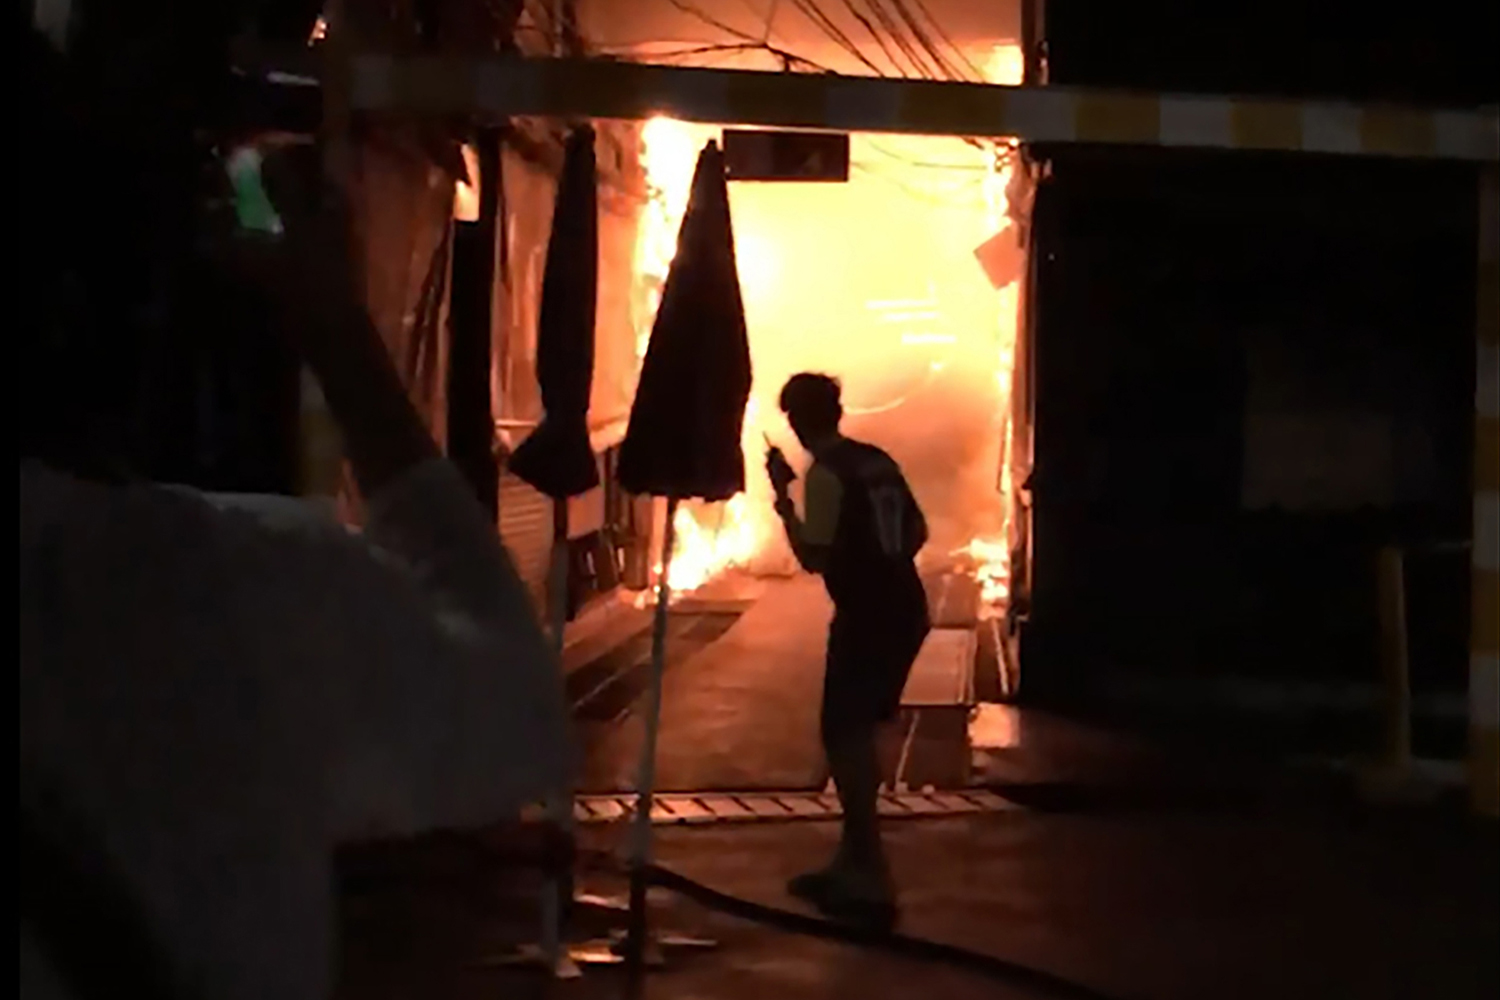 An image taken from a video clip shows the fire at Chatuchak weekend on Sunday night. (Younes Parvin via AP photo)